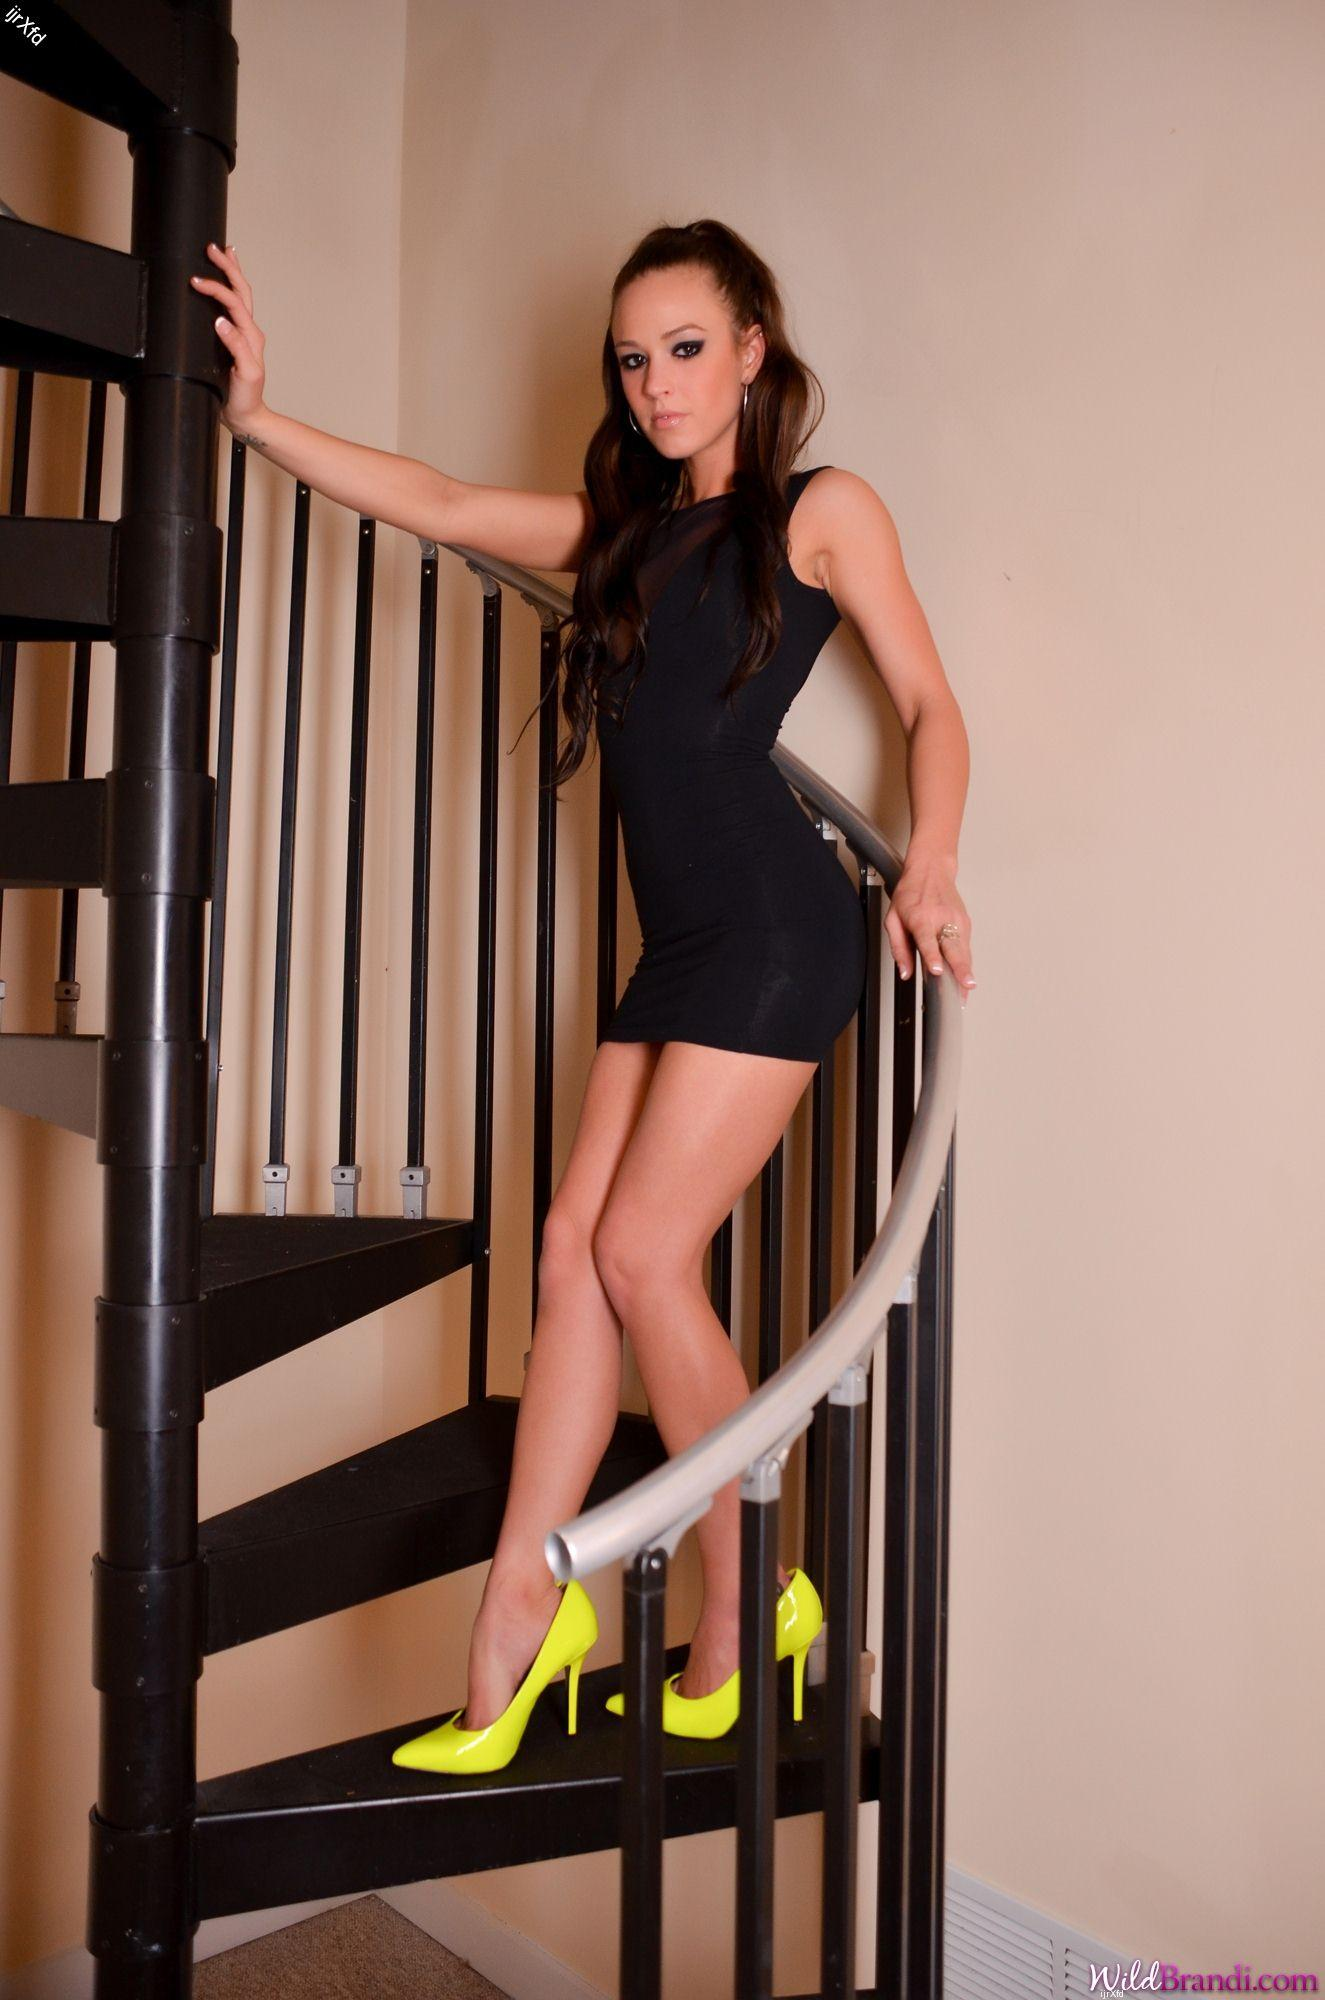 Stripteasing on the stairs